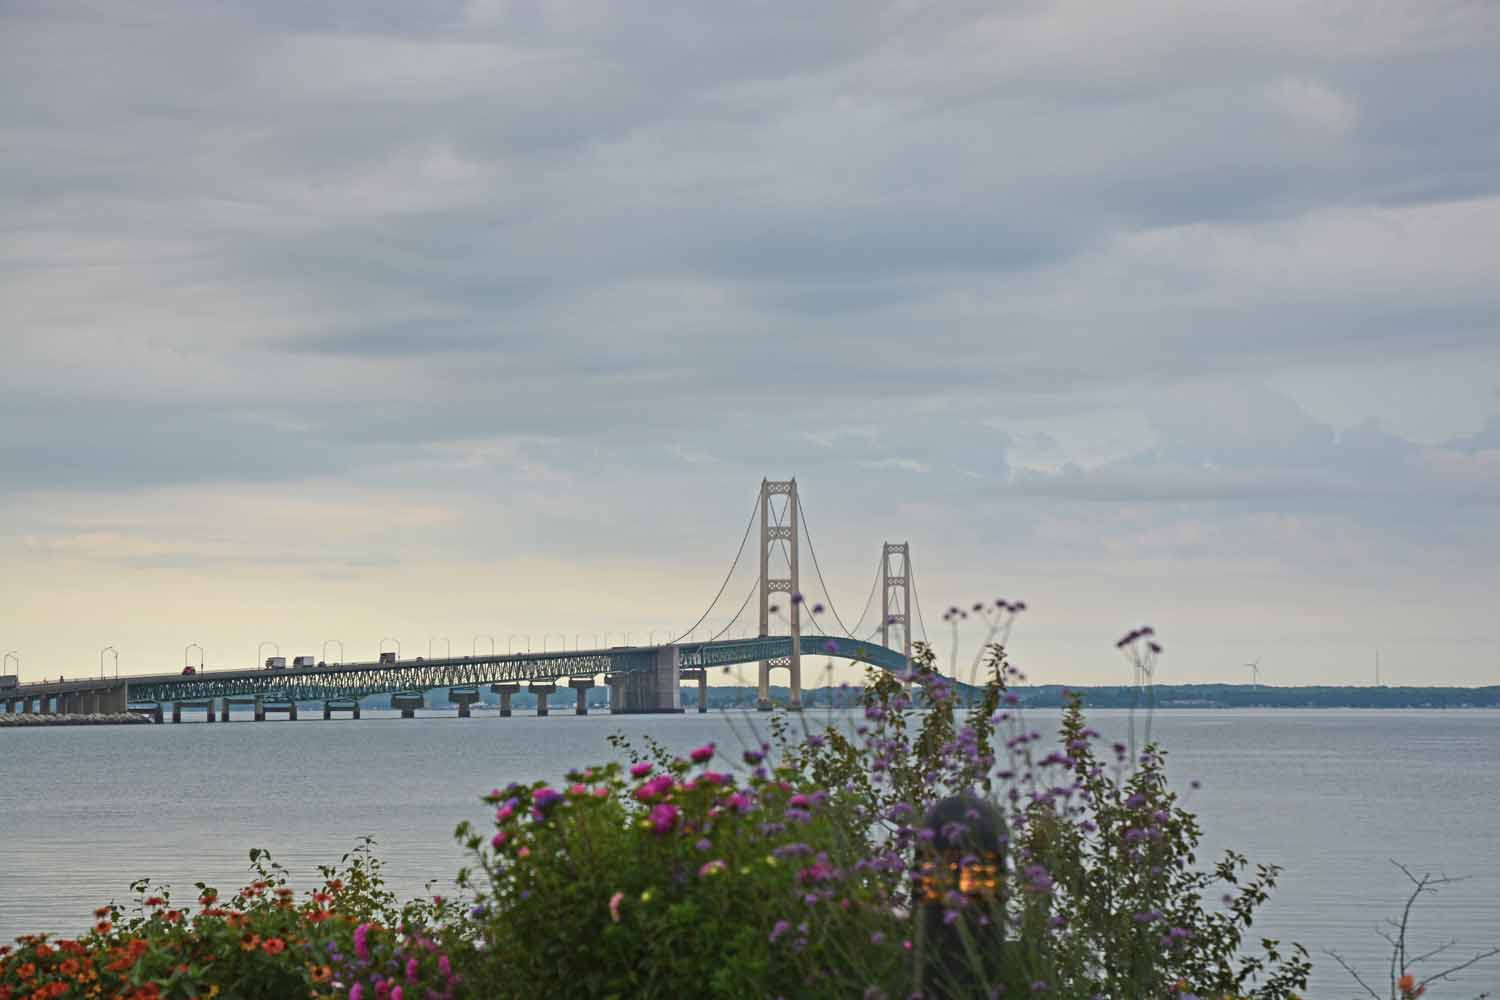 The Mackinac Bridge is the gateway to the north and an escape route to the wilderness of the Upper Peninsula of Michigan and if you are brave, Canada